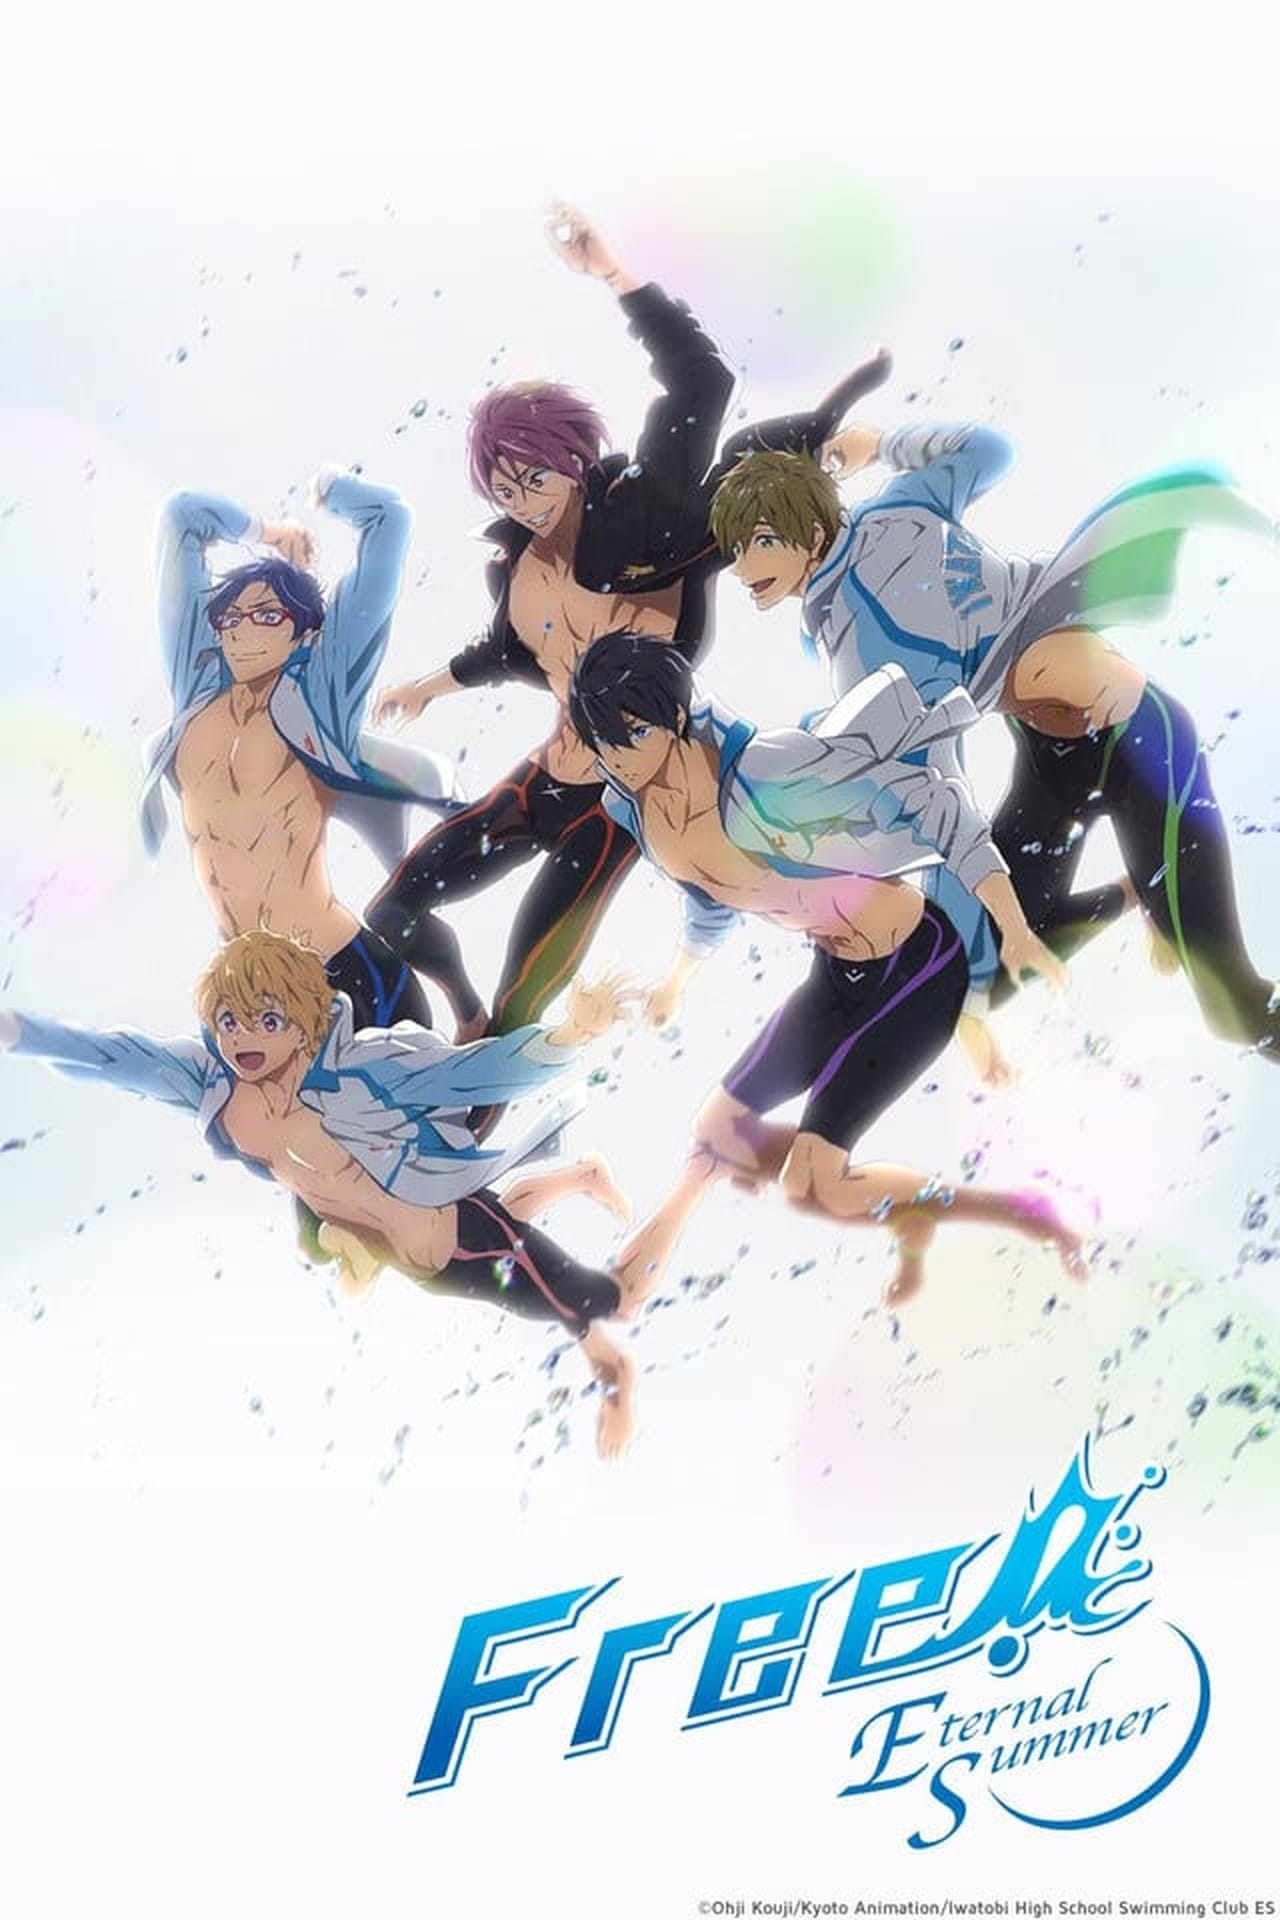 Watch Free! Season 2 Online